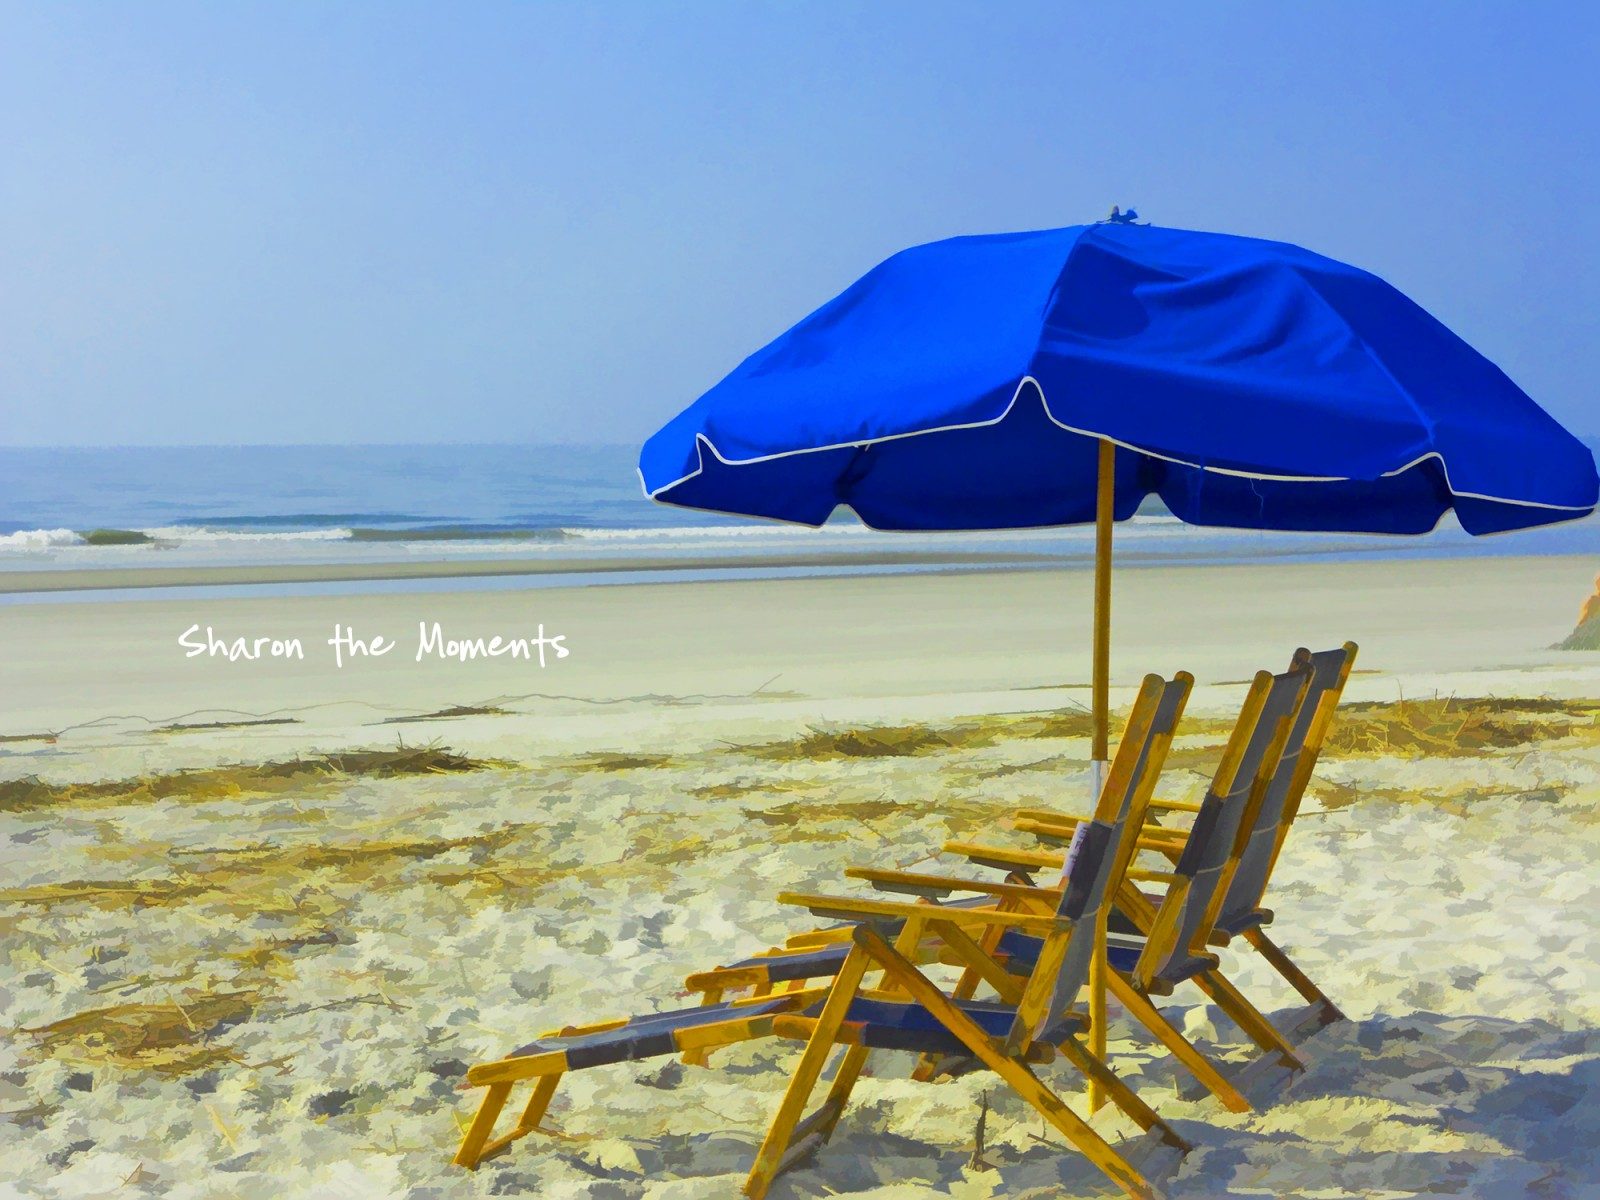 5 Tips for a Great Vacation|Sharon the Moments Blog